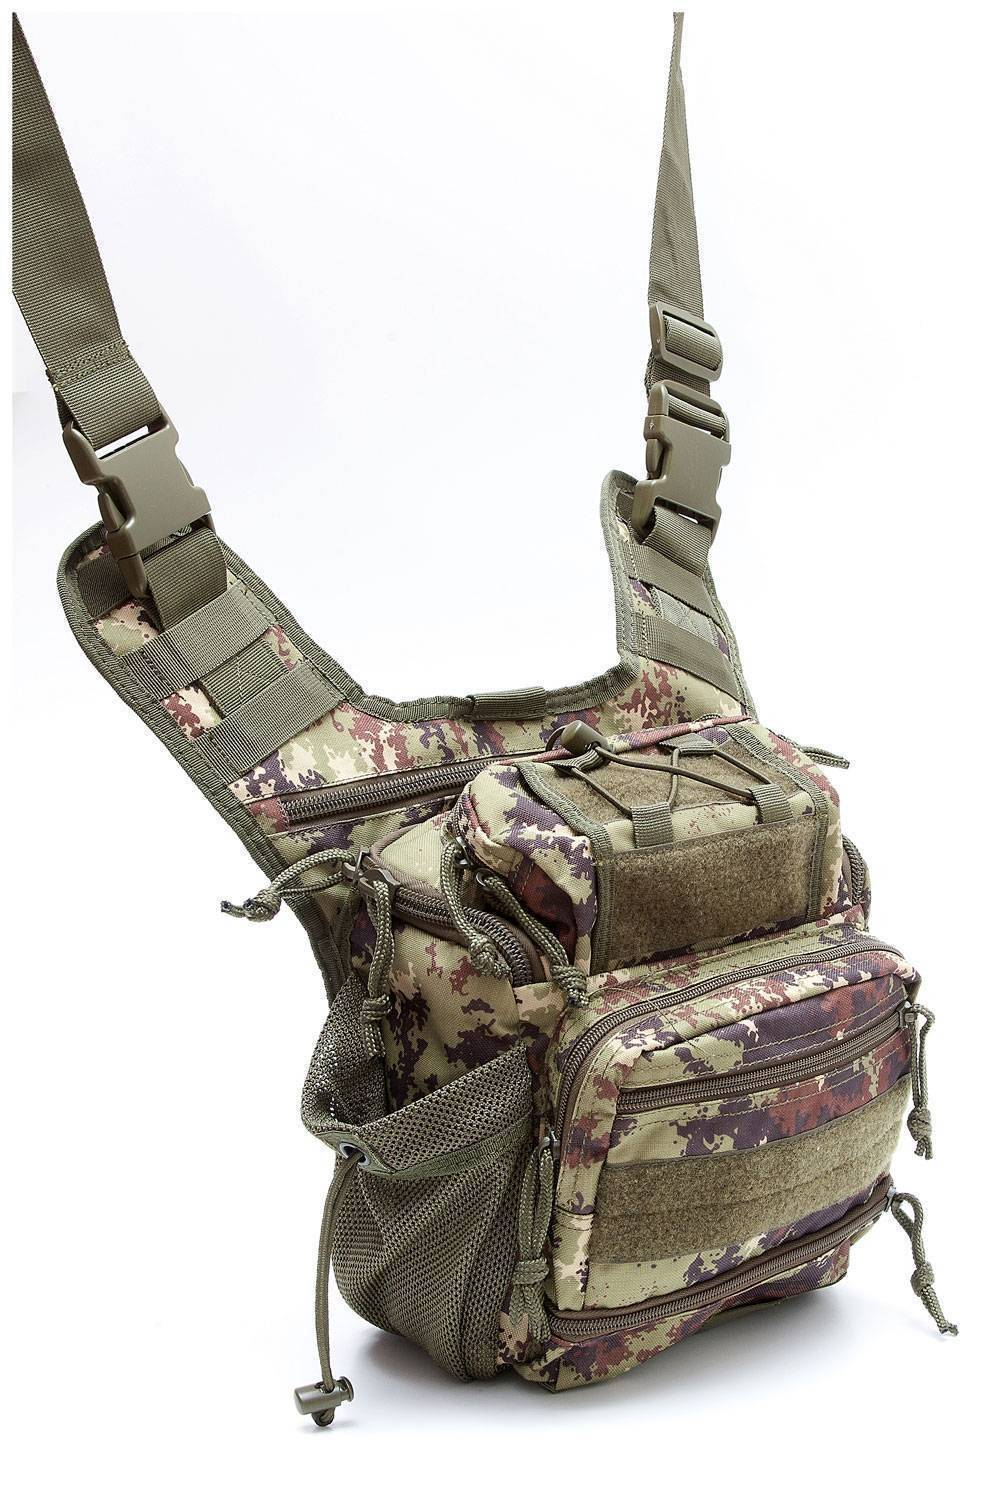 Тактическая плечевая сумка Defcon 5 Tactical shoulder bag multi pocket Vegetato Italiano D5-MSB05VI